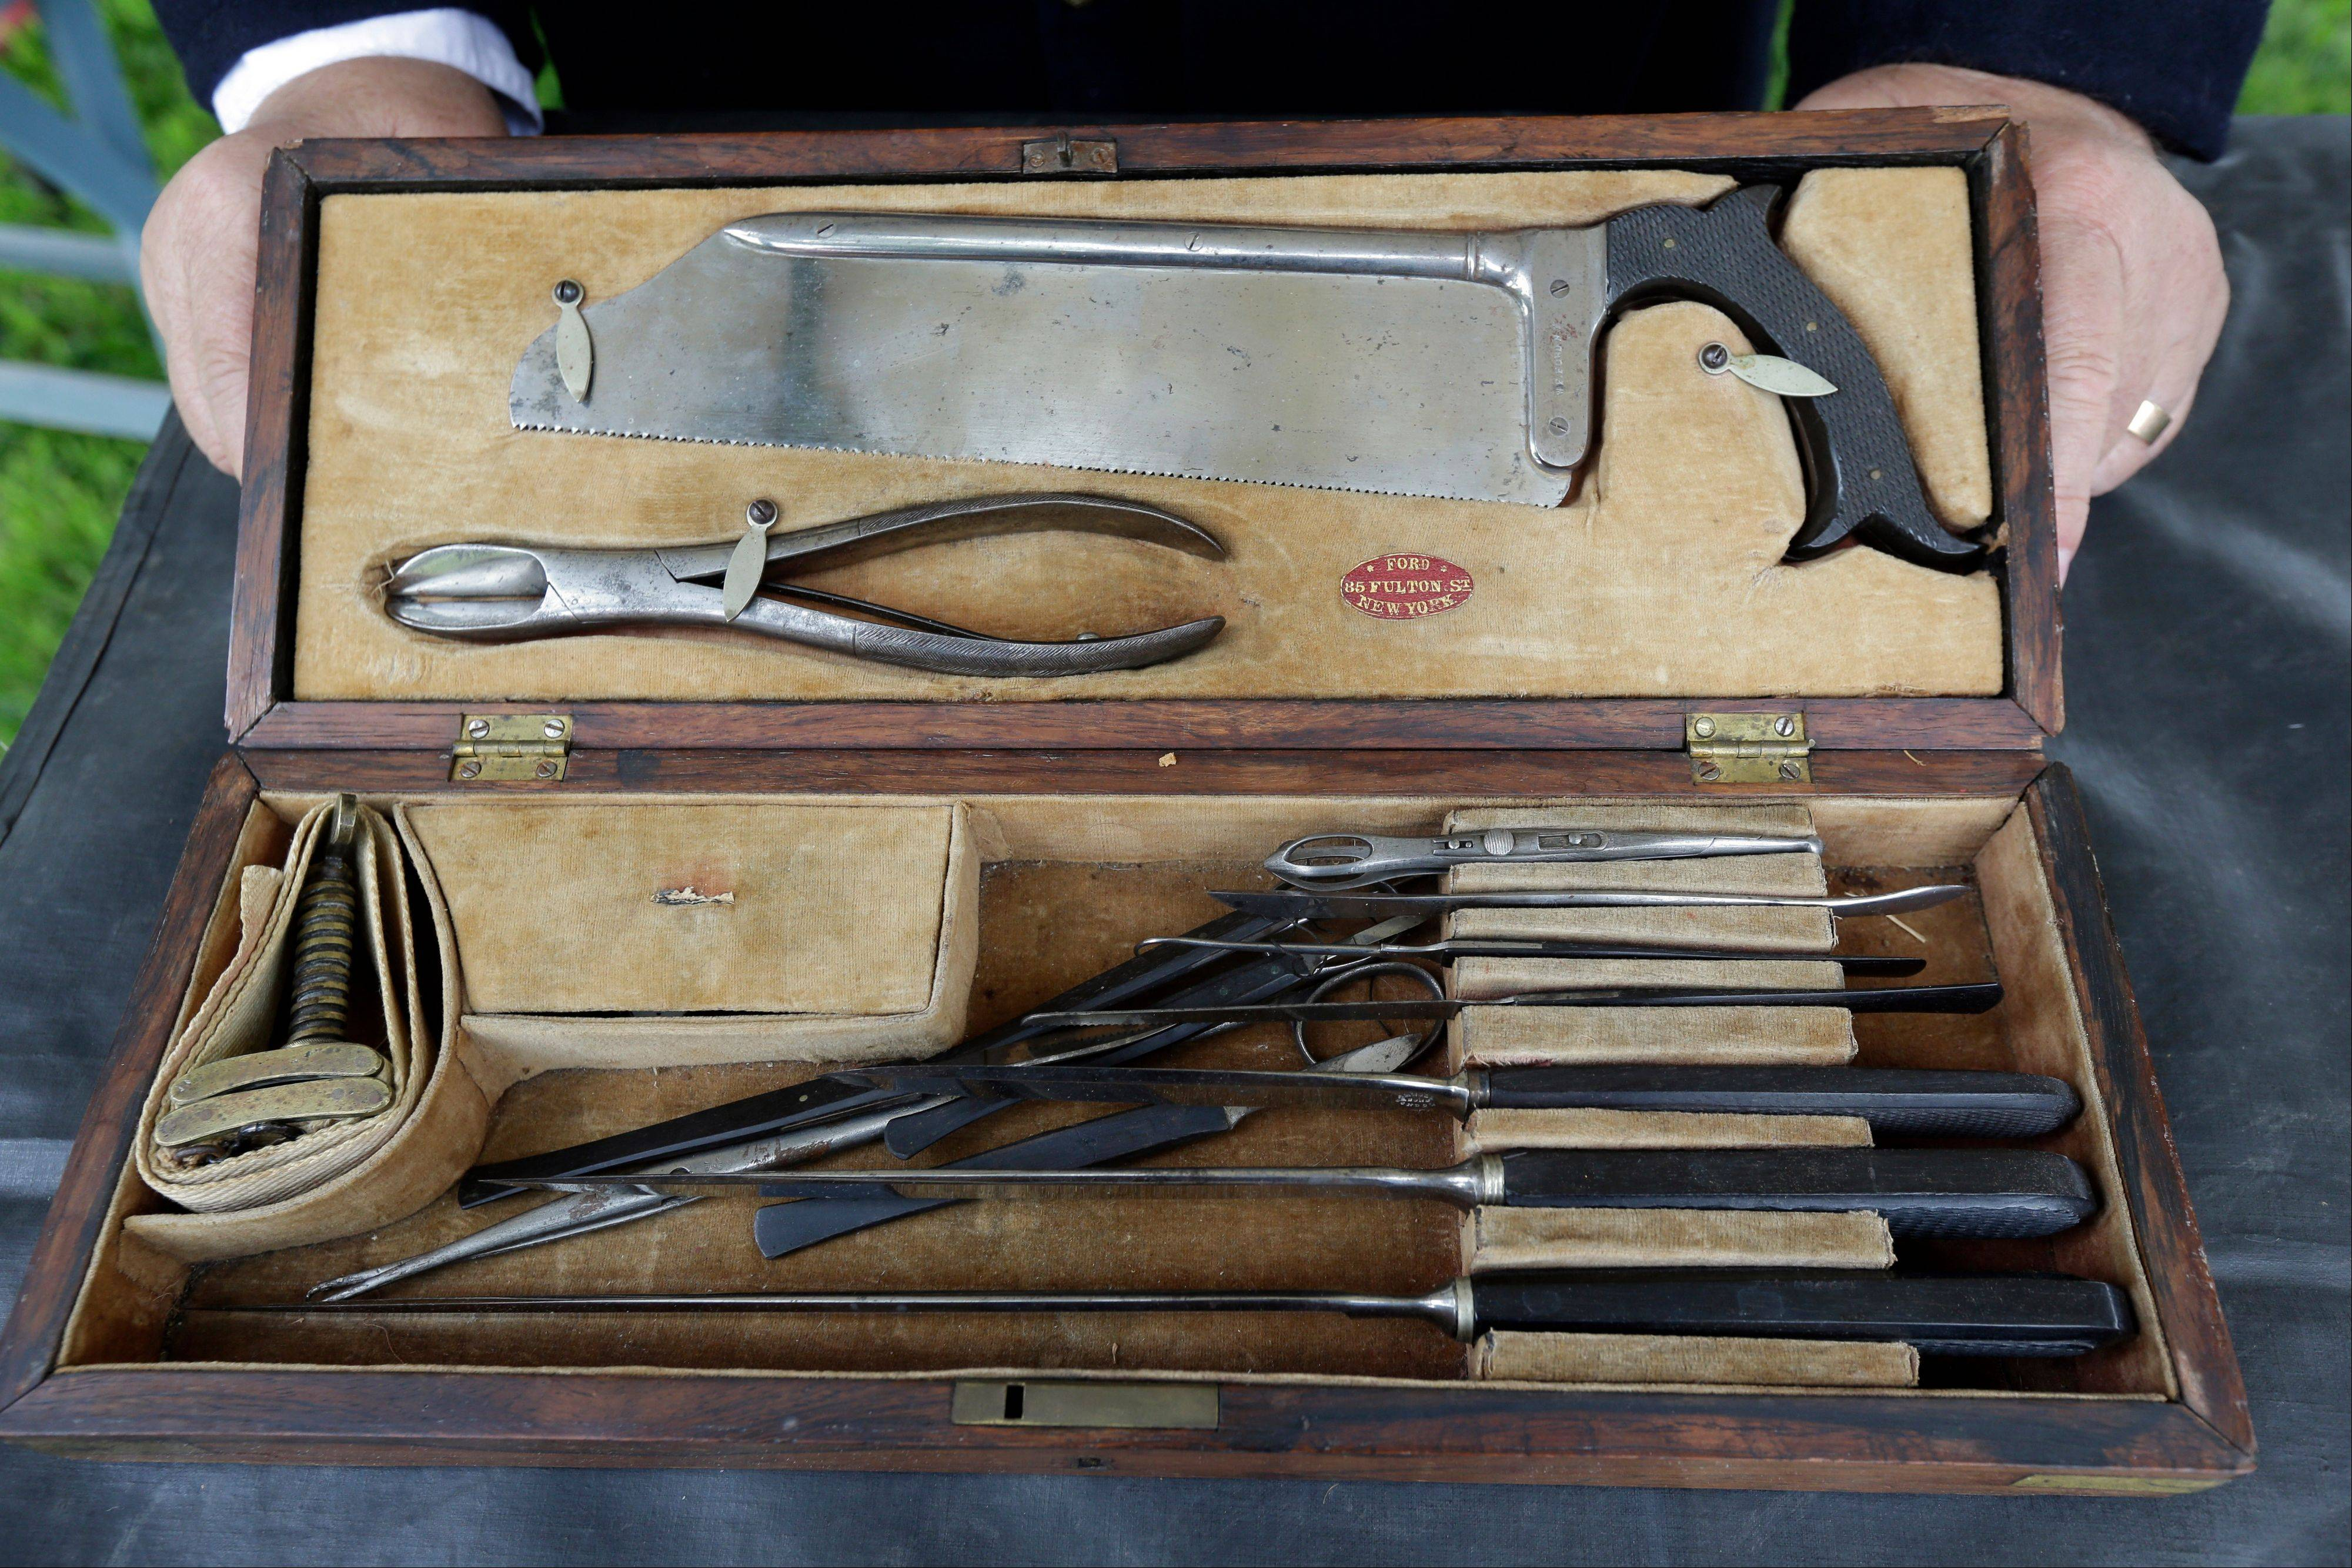 Medical instruments from the Civil War era will be on display at the Batavia Depot Museum the weekend of Sept. 7-8.